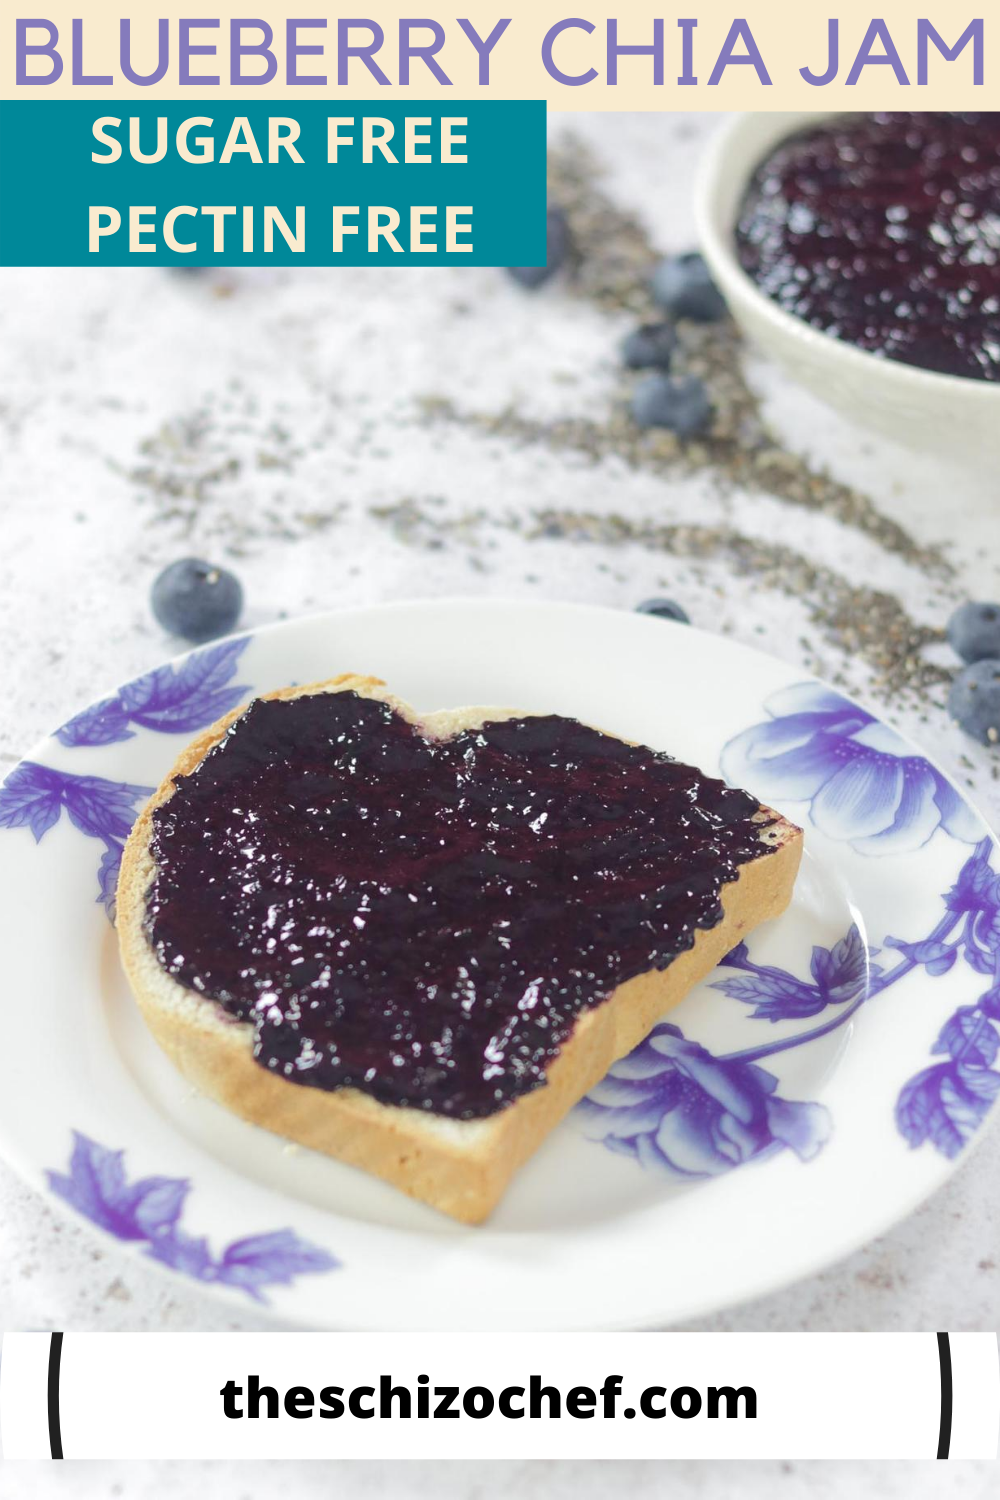 jam on toast with text